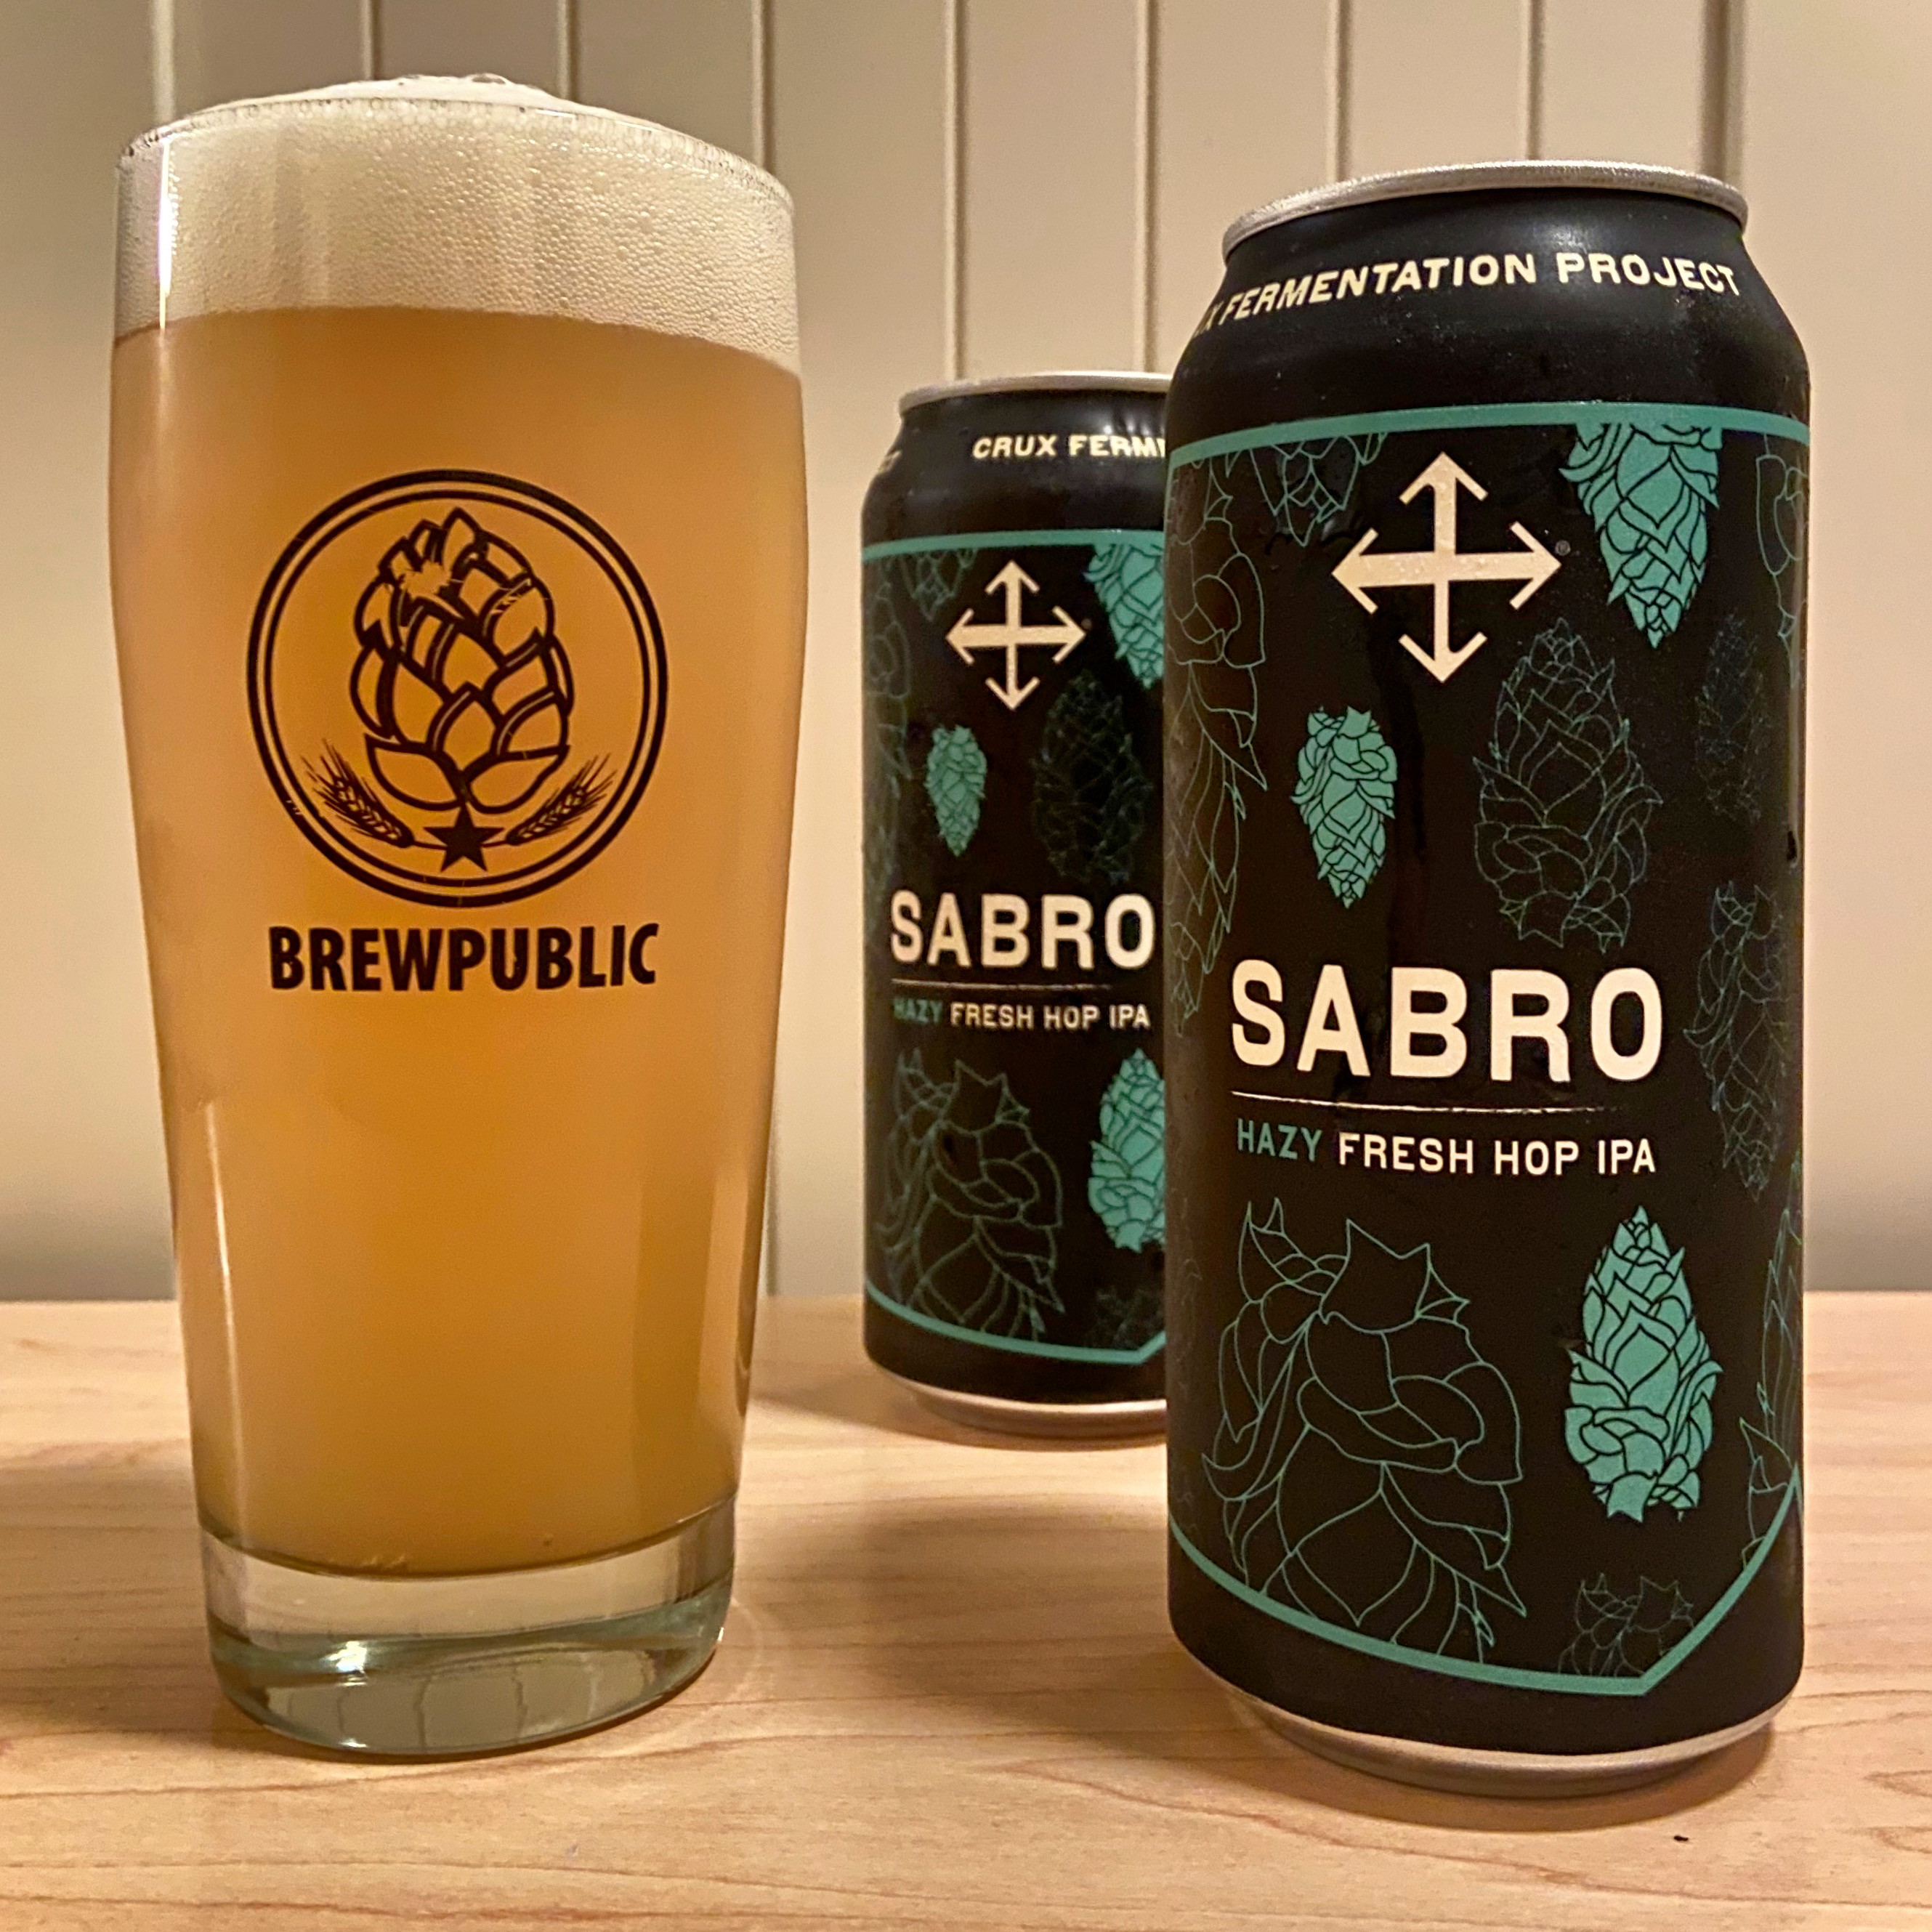 SABRO Hazy Fresh Hop IPA from Crux Fermentation Project is available in 16oz cans.